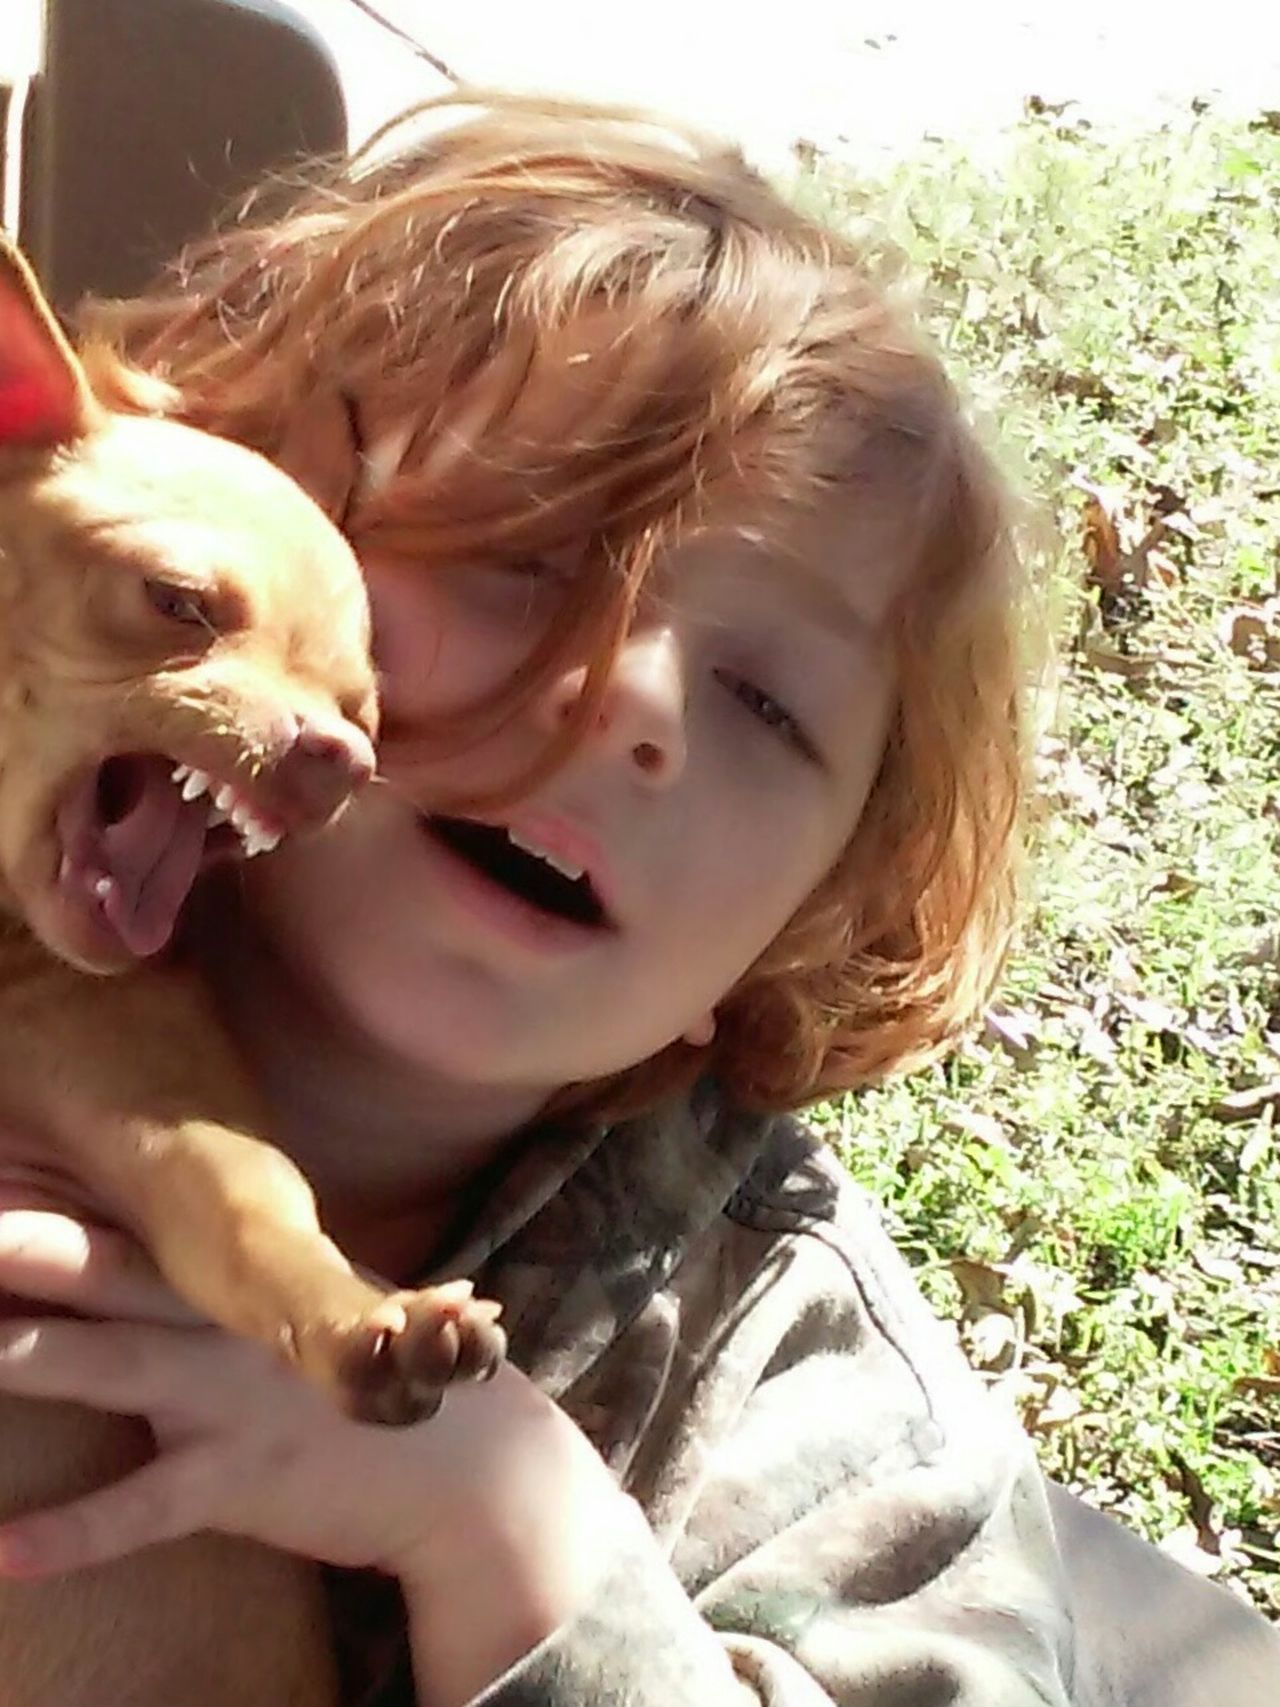 Uniqueness Pets Happiness A Boy And His Dog Redhead Boy And Dog Chihuahua Funny Faces Pflugerville,tx